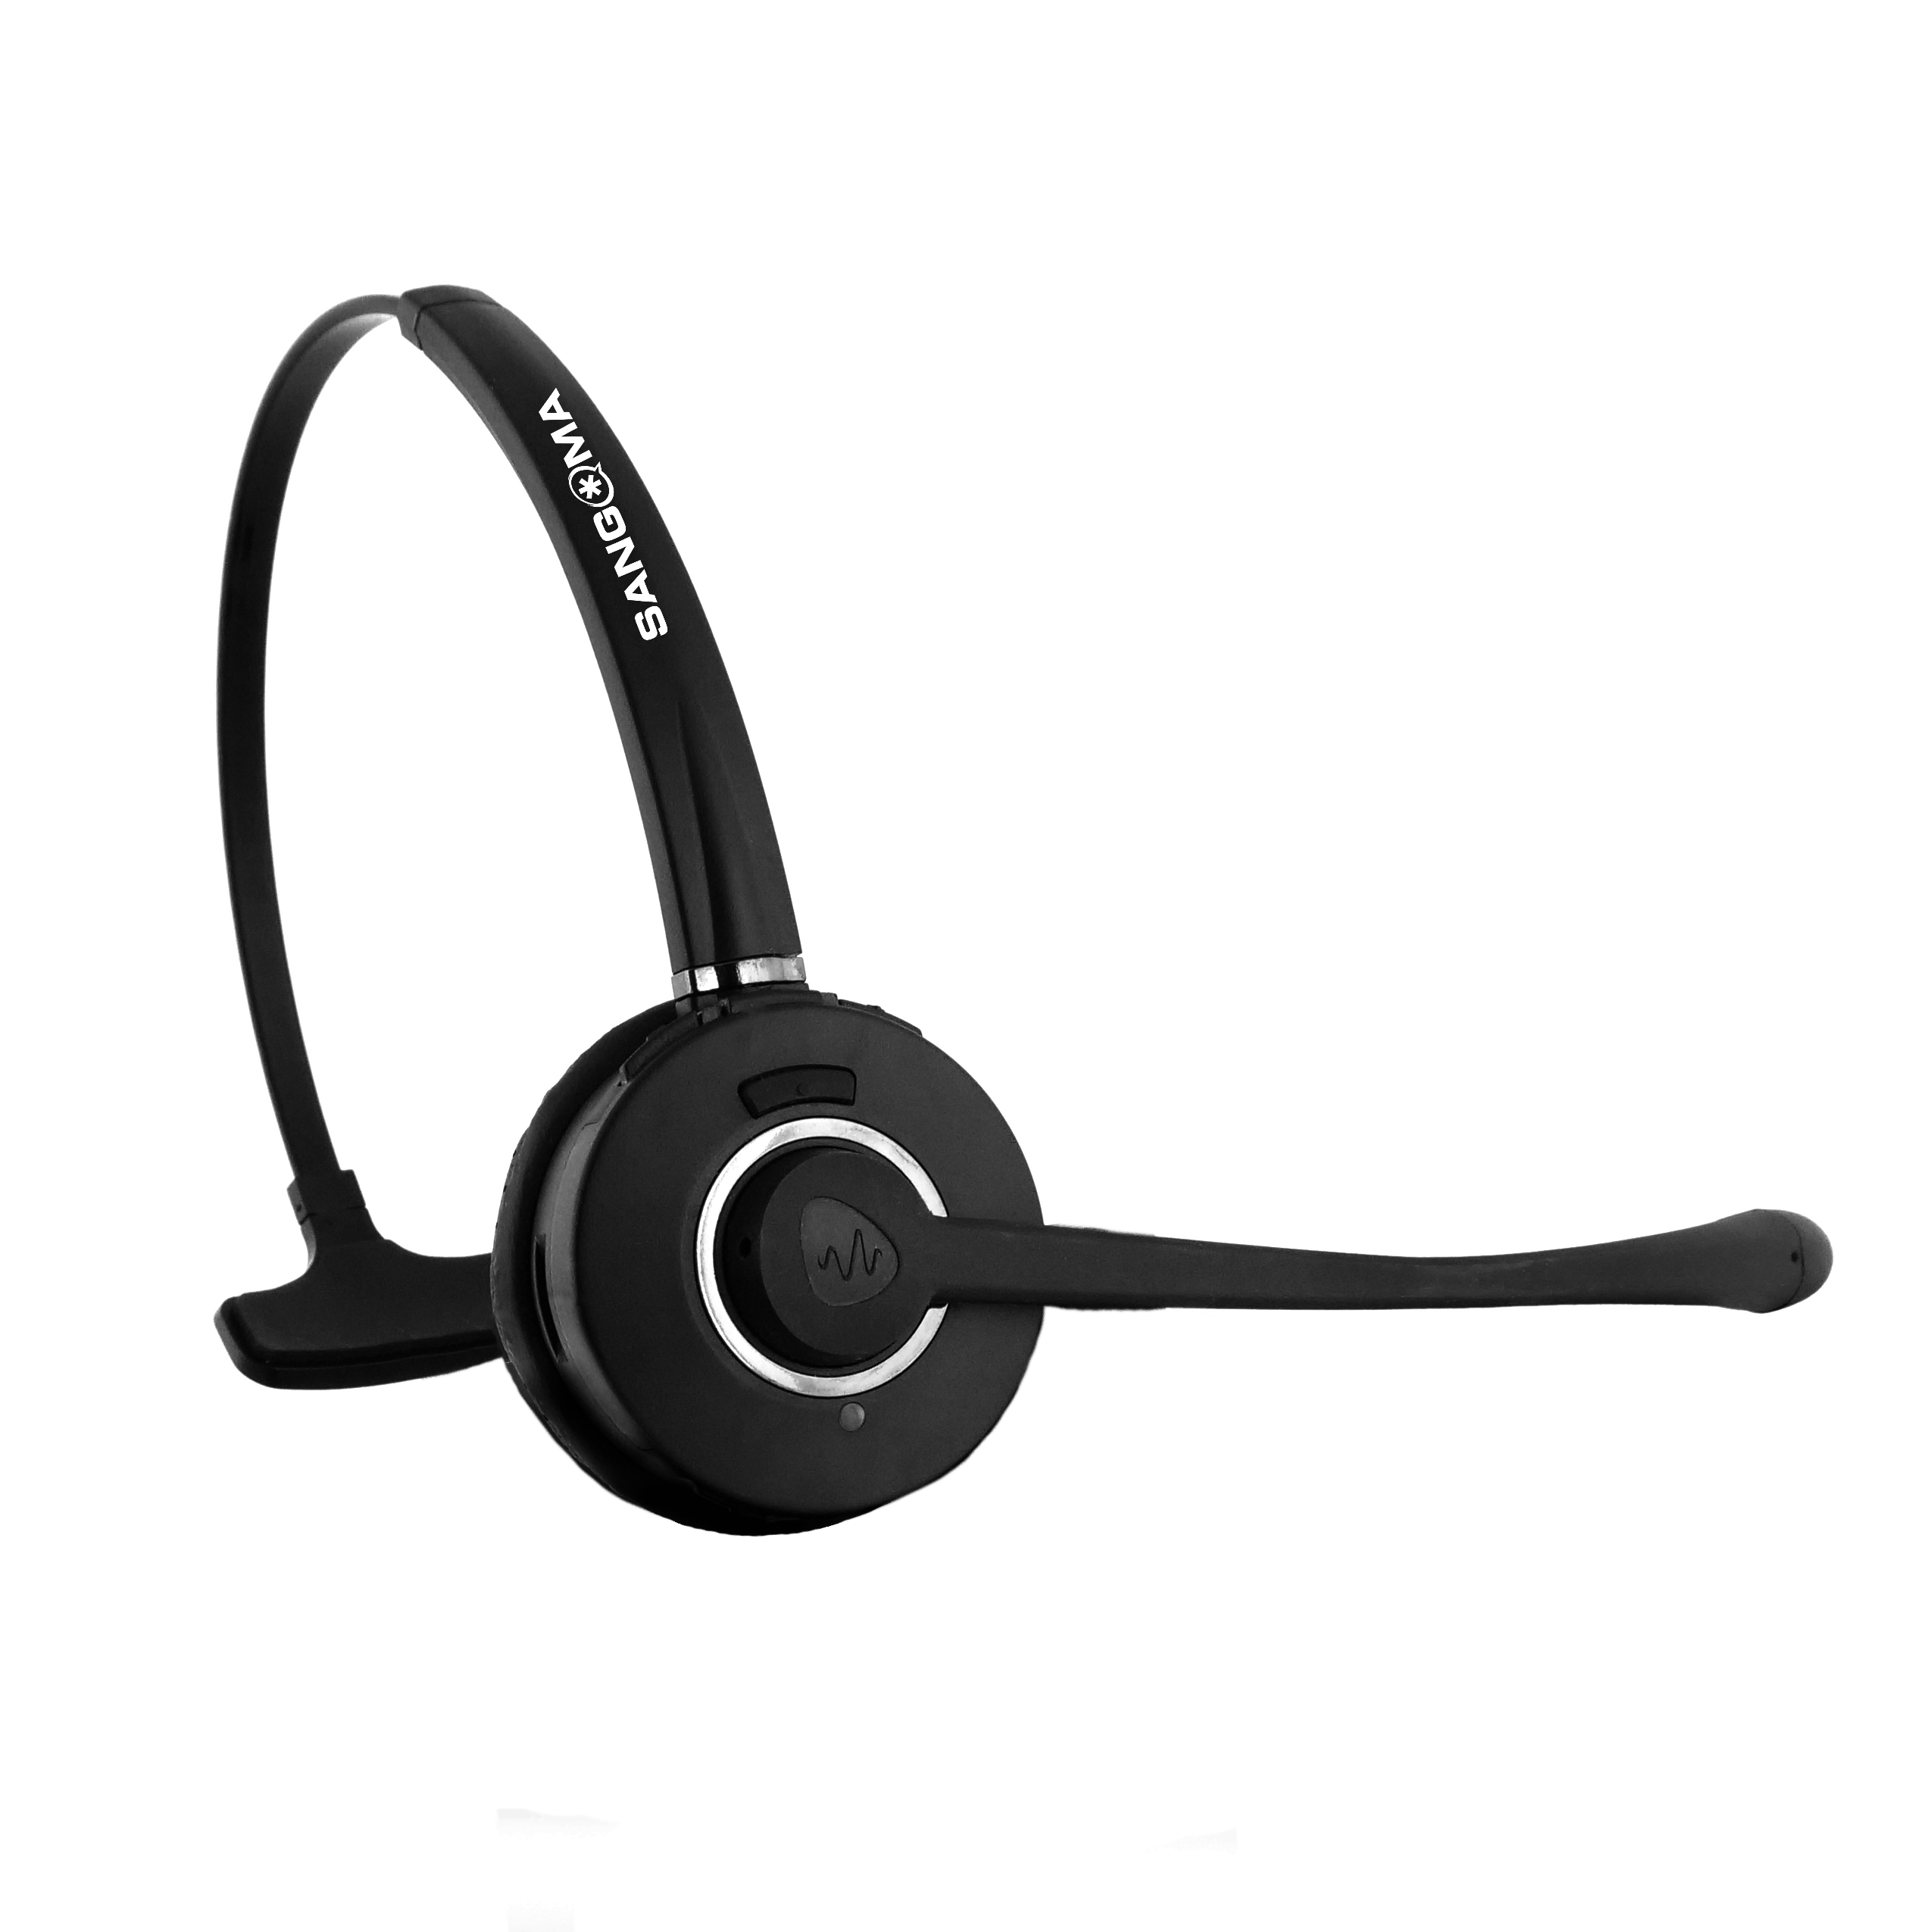 H10 headset from the side